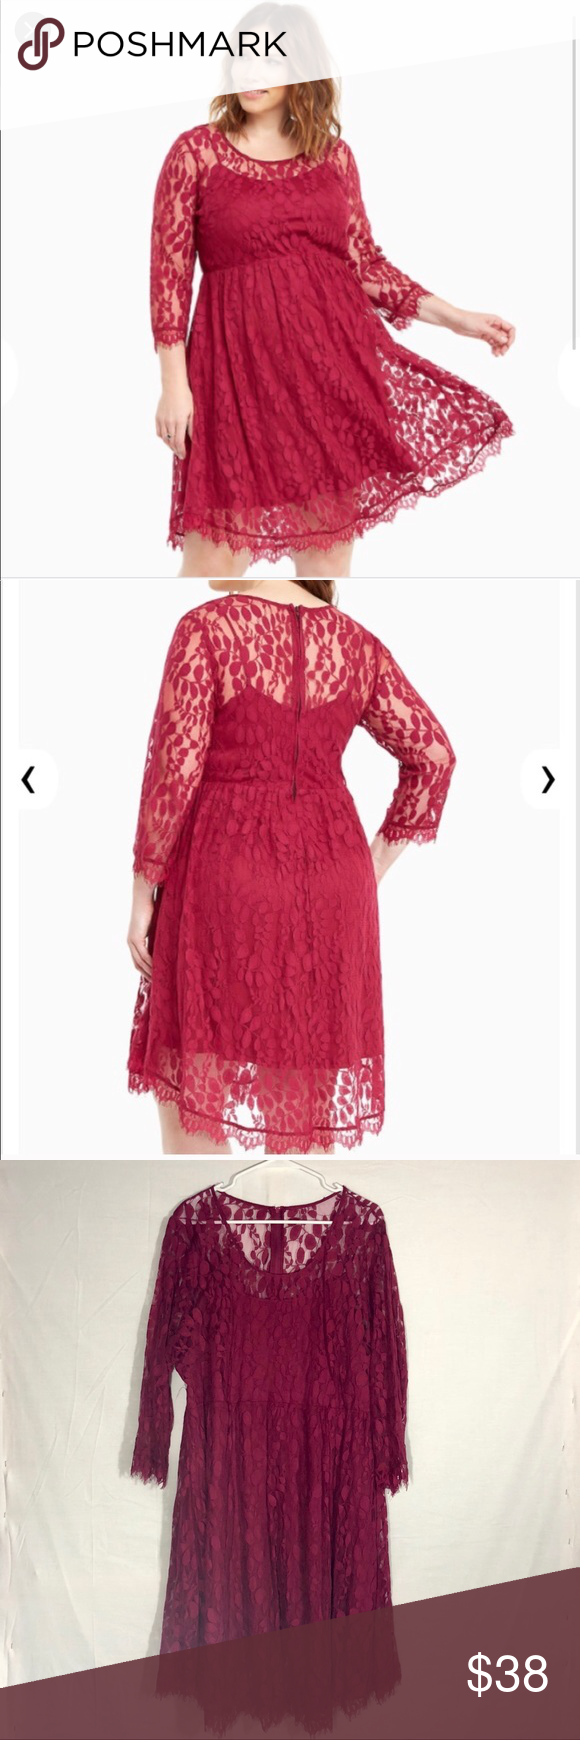 Lace dress torrid  Torrid Floral Lace Dress  My Posh Picks  Pinterest  Floral lace